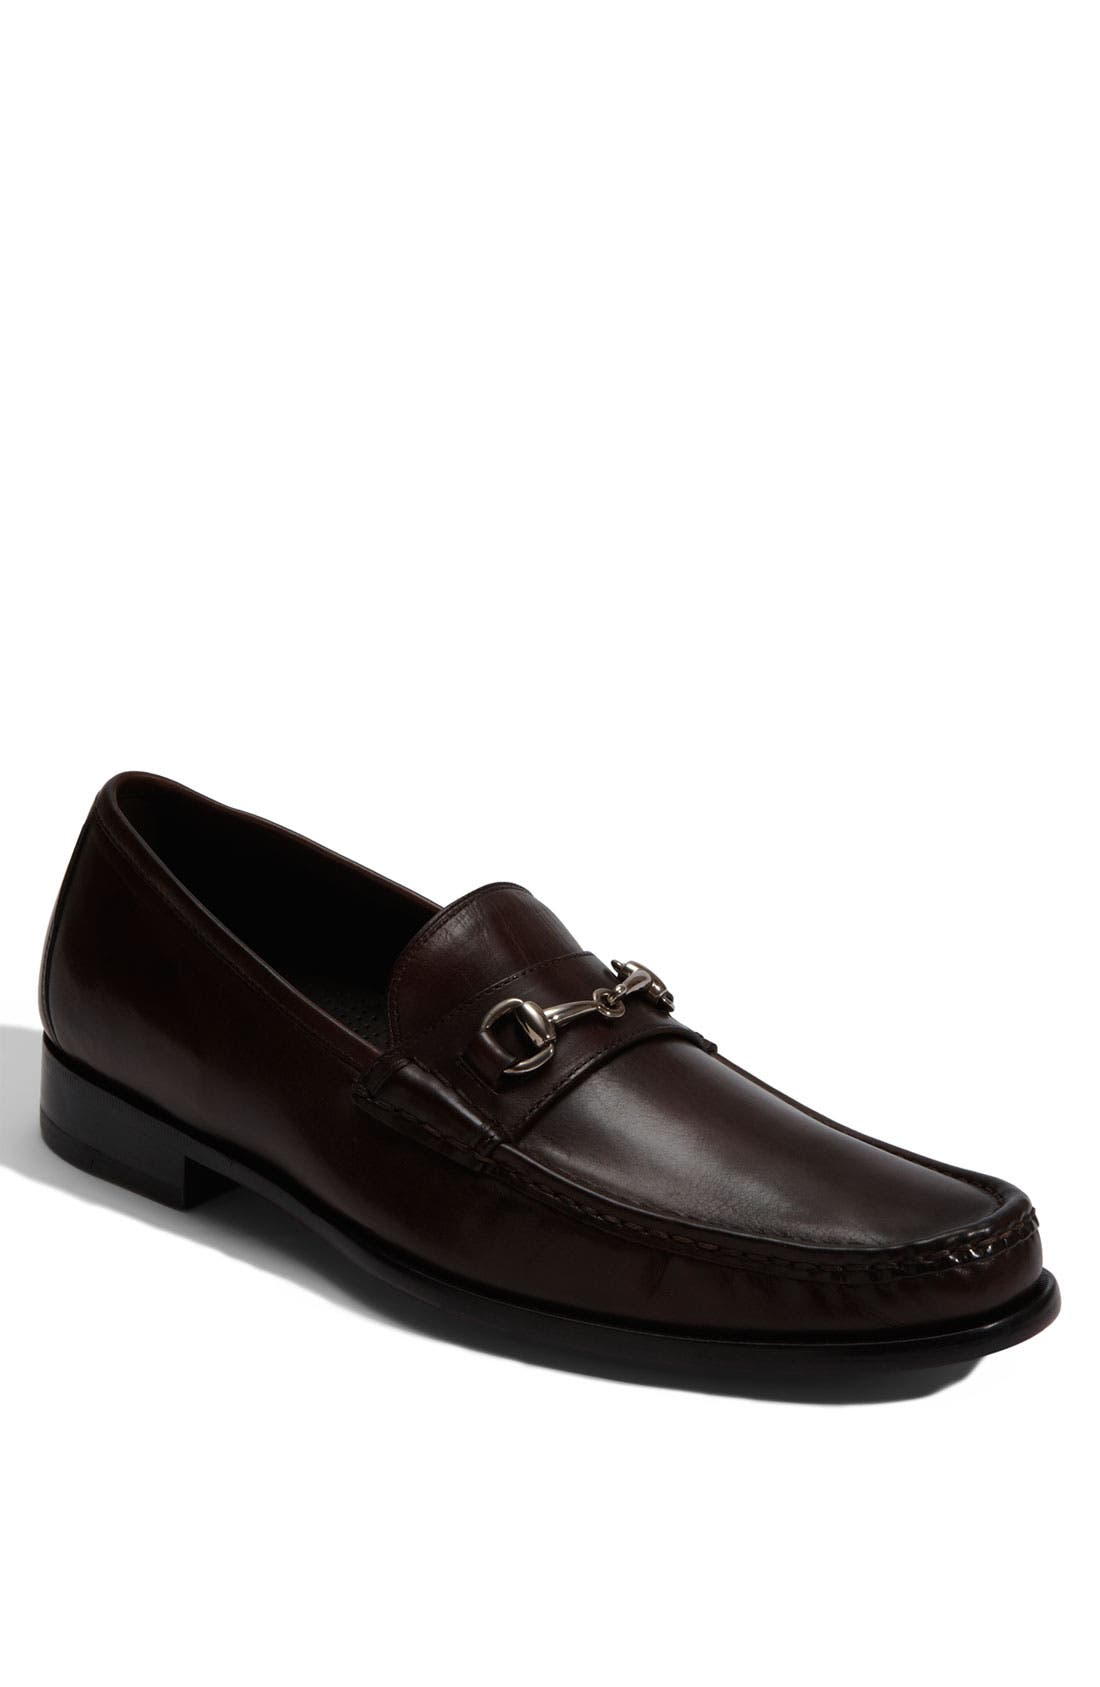 Alternate Image 1 Selected - Cole Haan 'Air Aiden' Loafer